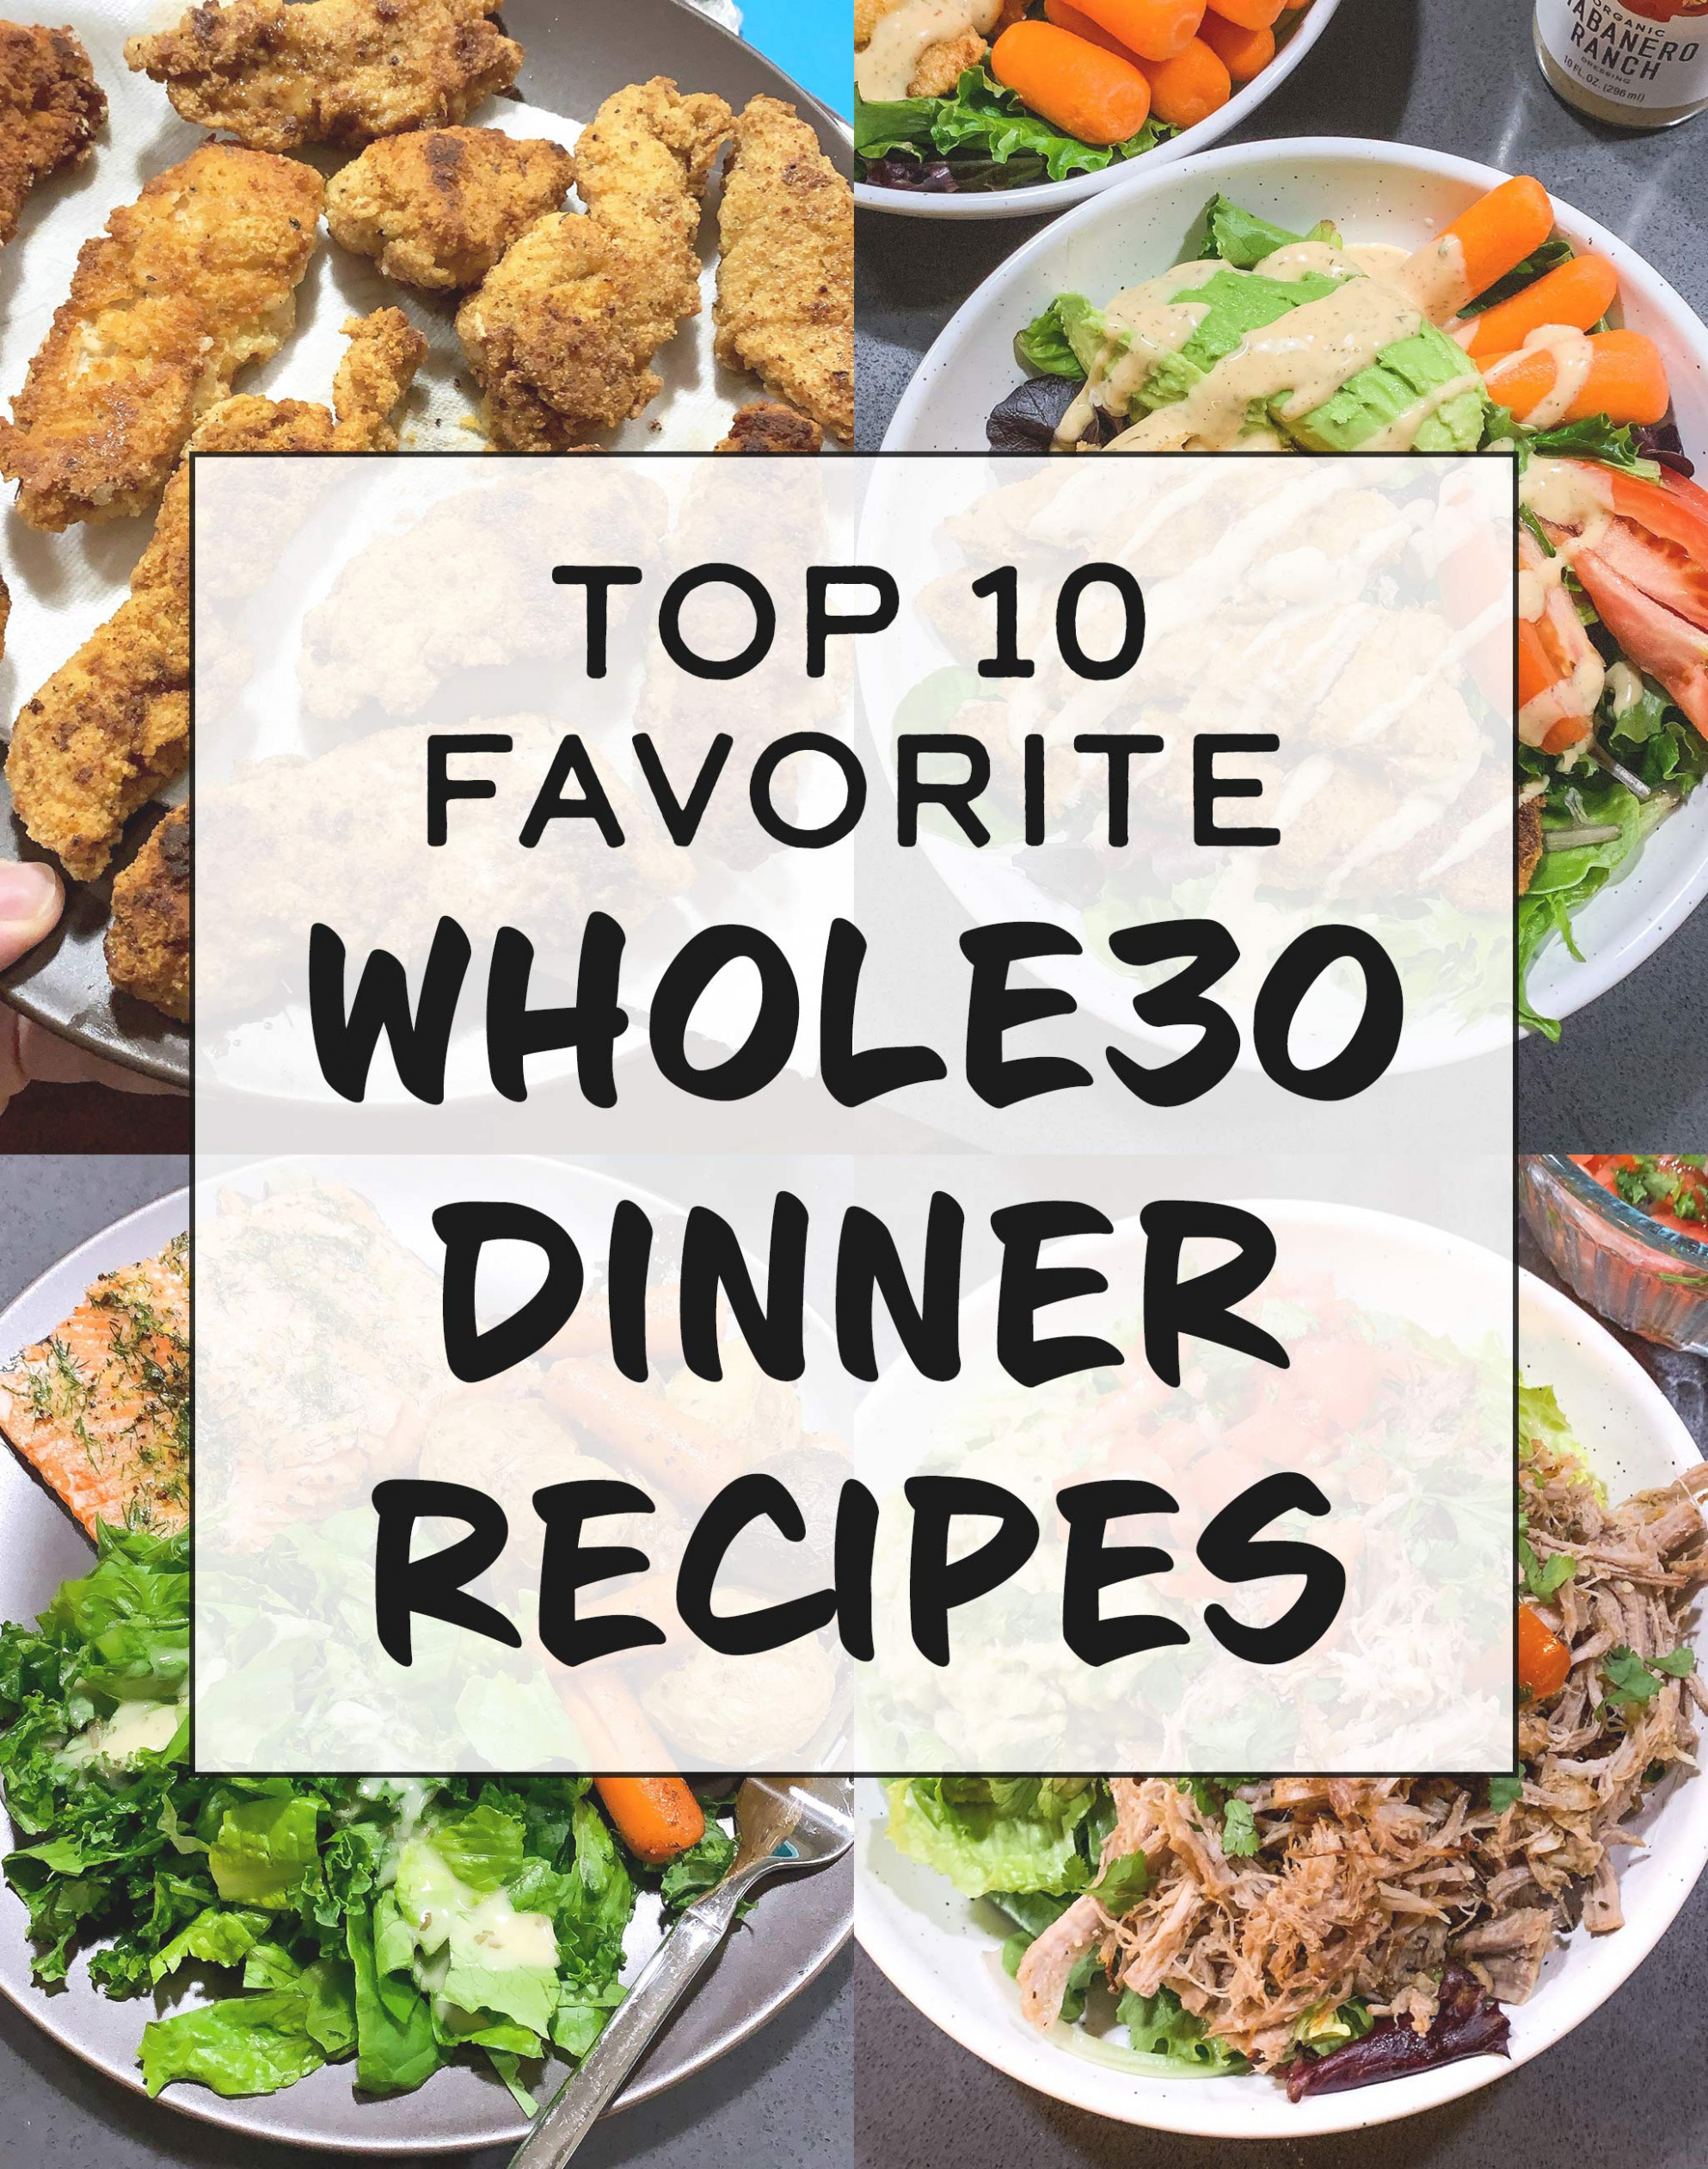 Top 14 Favorite Whole14 Dinner Recipes - Project Meal Plan - Dinner Recipes Name